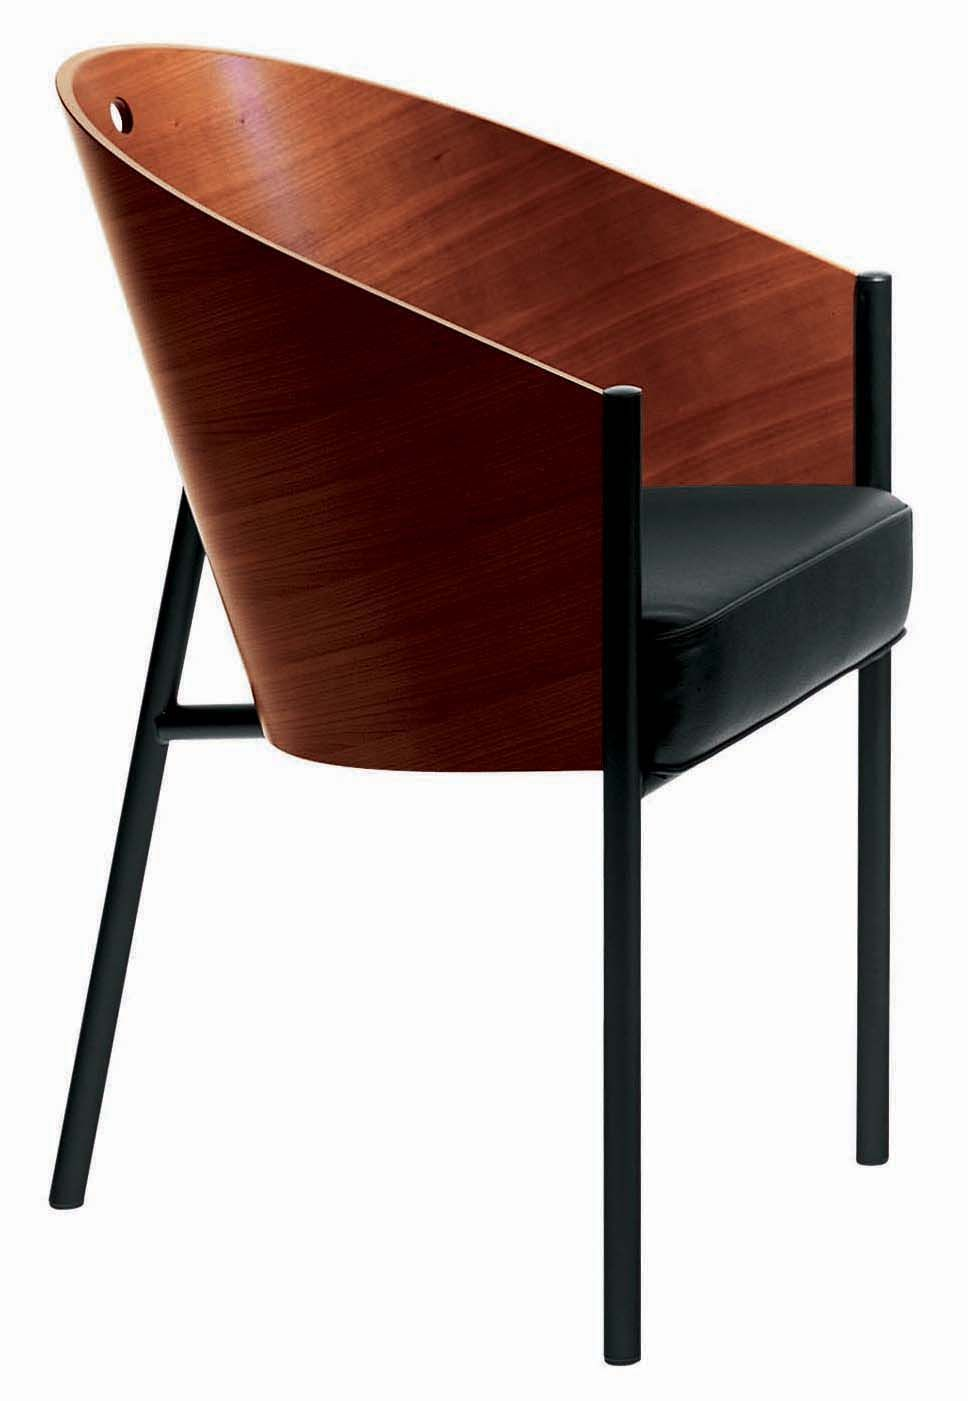 Furniture - Chairs - Costes Armchair - Wood seat by Driade - Mahogany - Lacquered steel, Leather, Mahogany